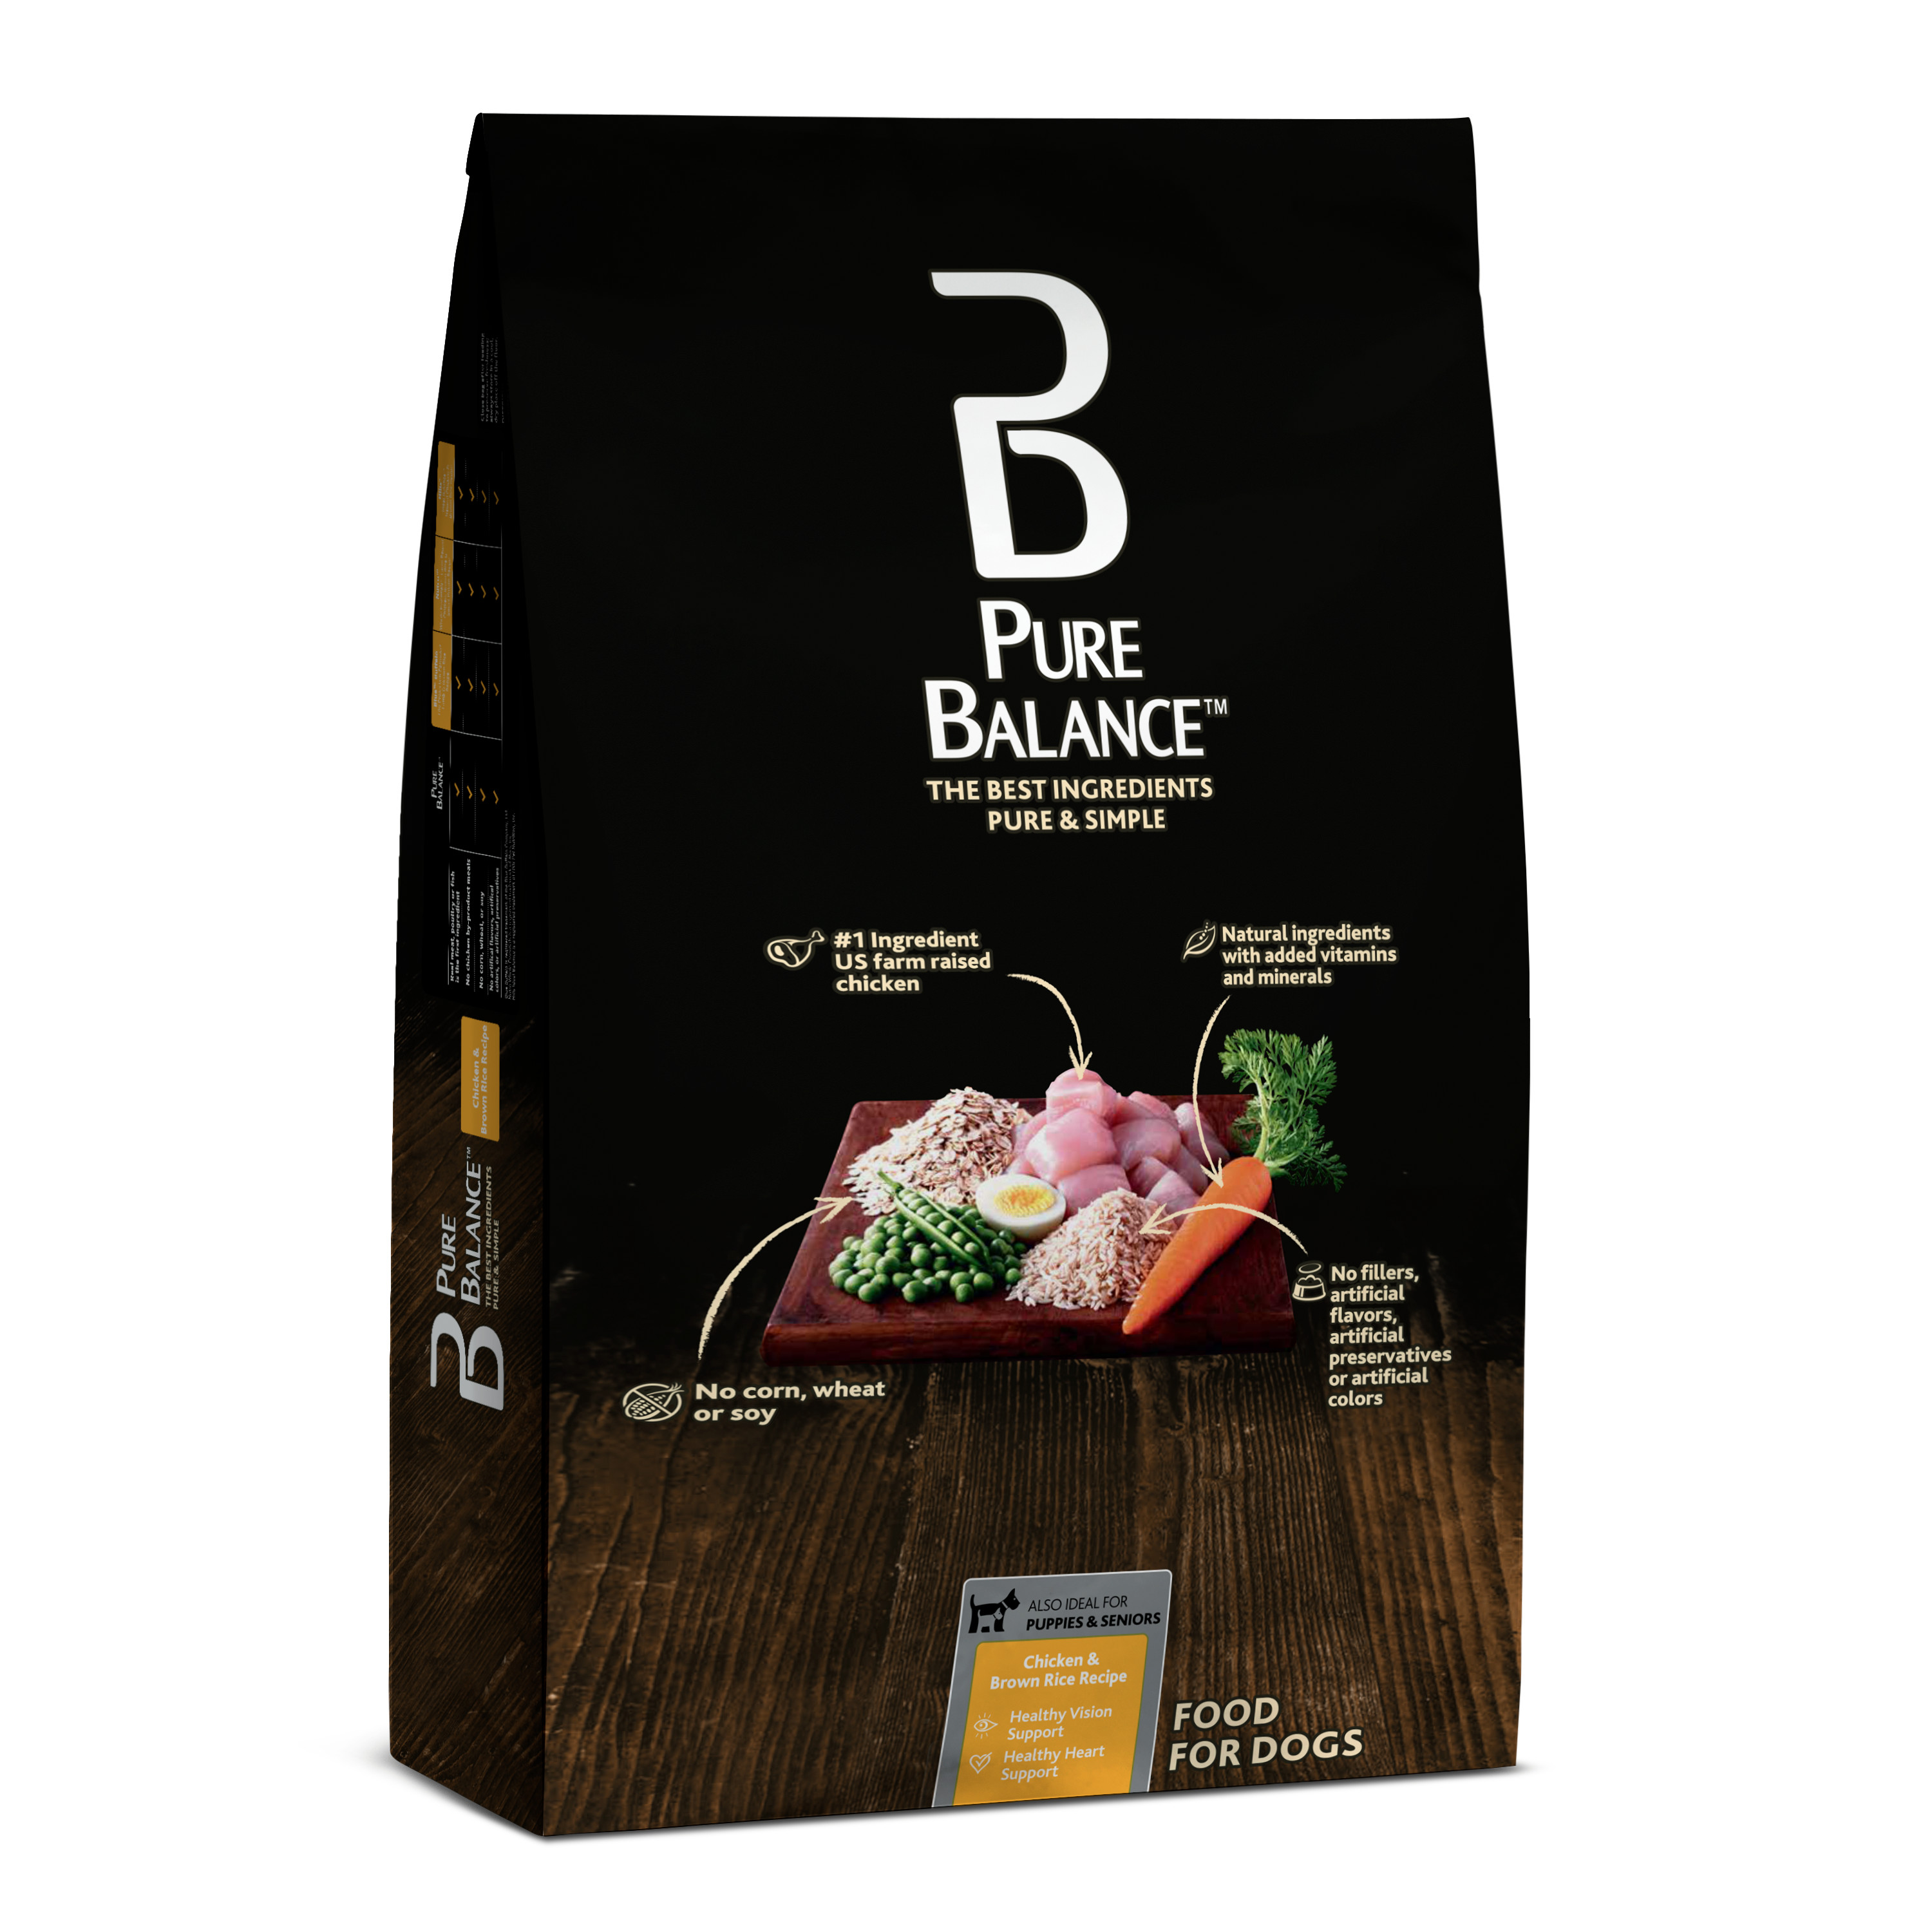 Pure Balance Chicken & Brown Rice Recipe Food for Dogs 5lbs